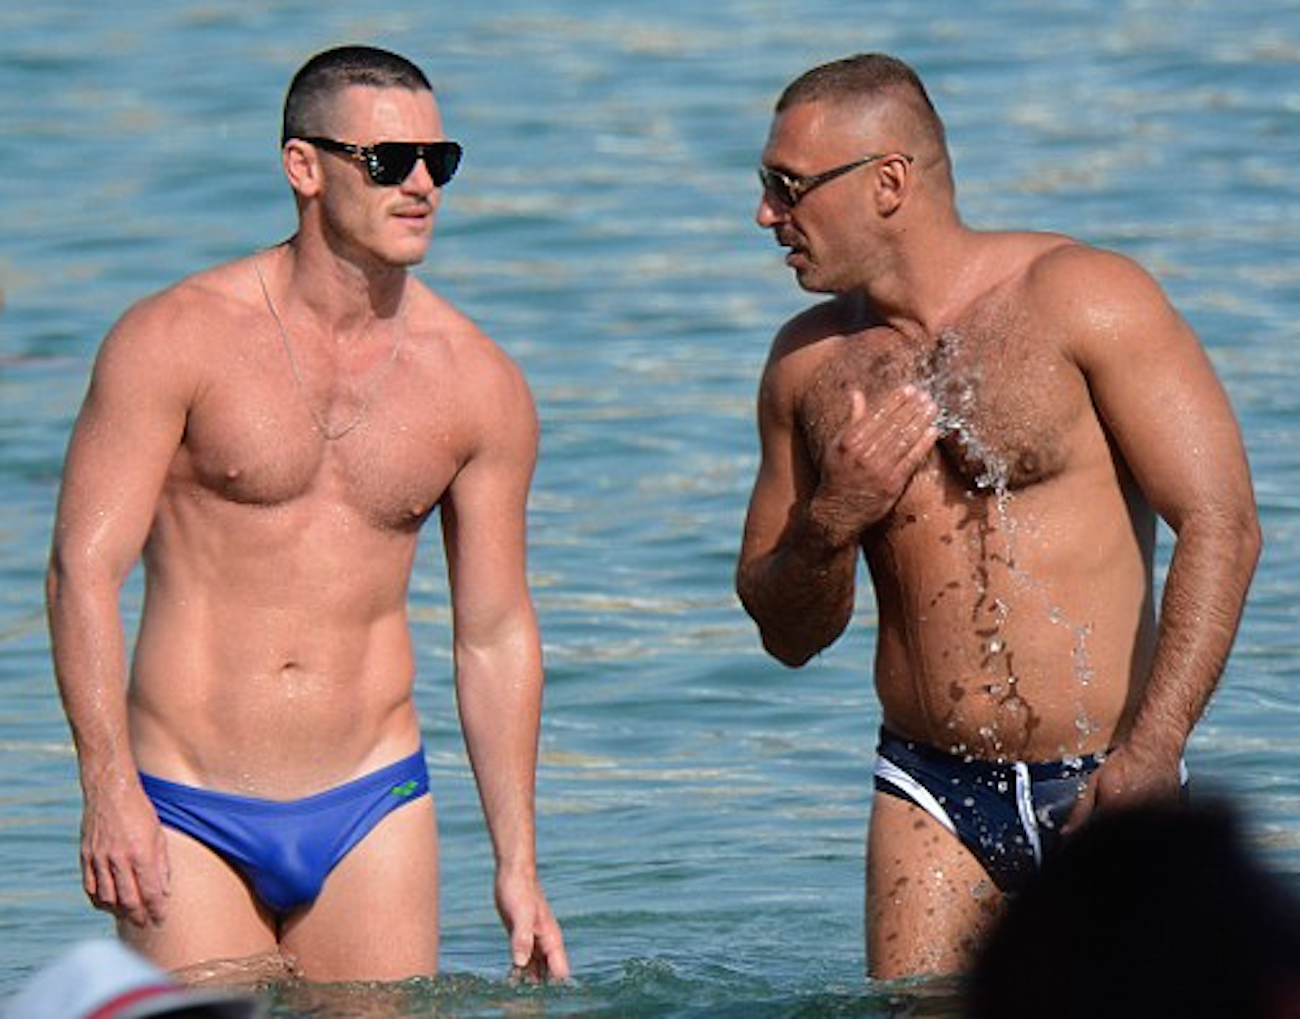 luke evans is not gay